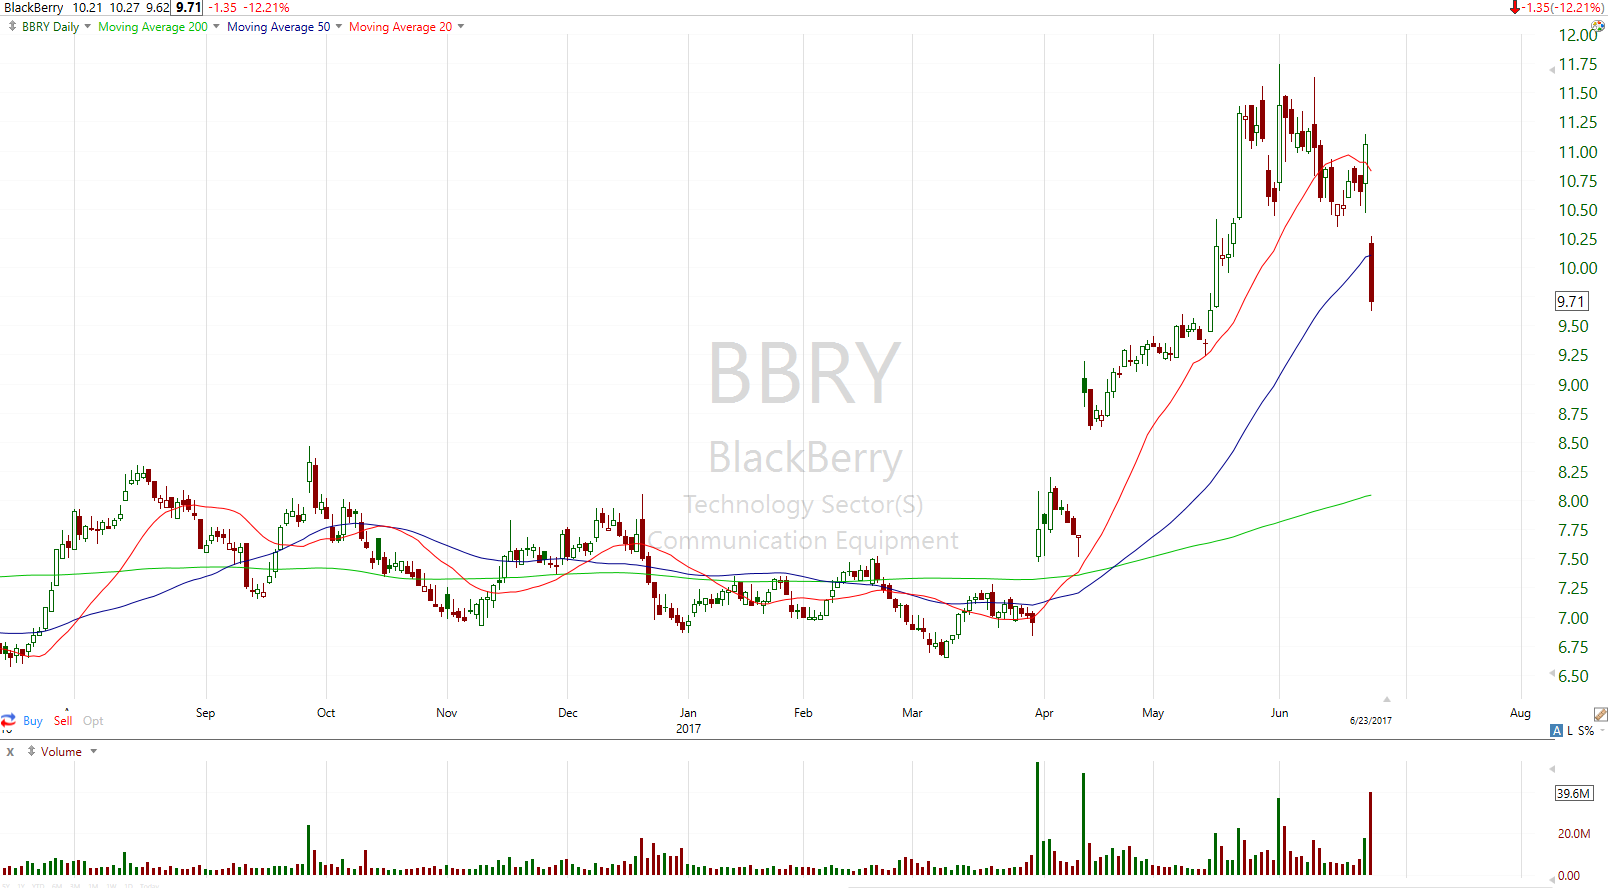 BlackBerry (BBRY) Earns Market Perform Recommendation at BMO Capital Markets